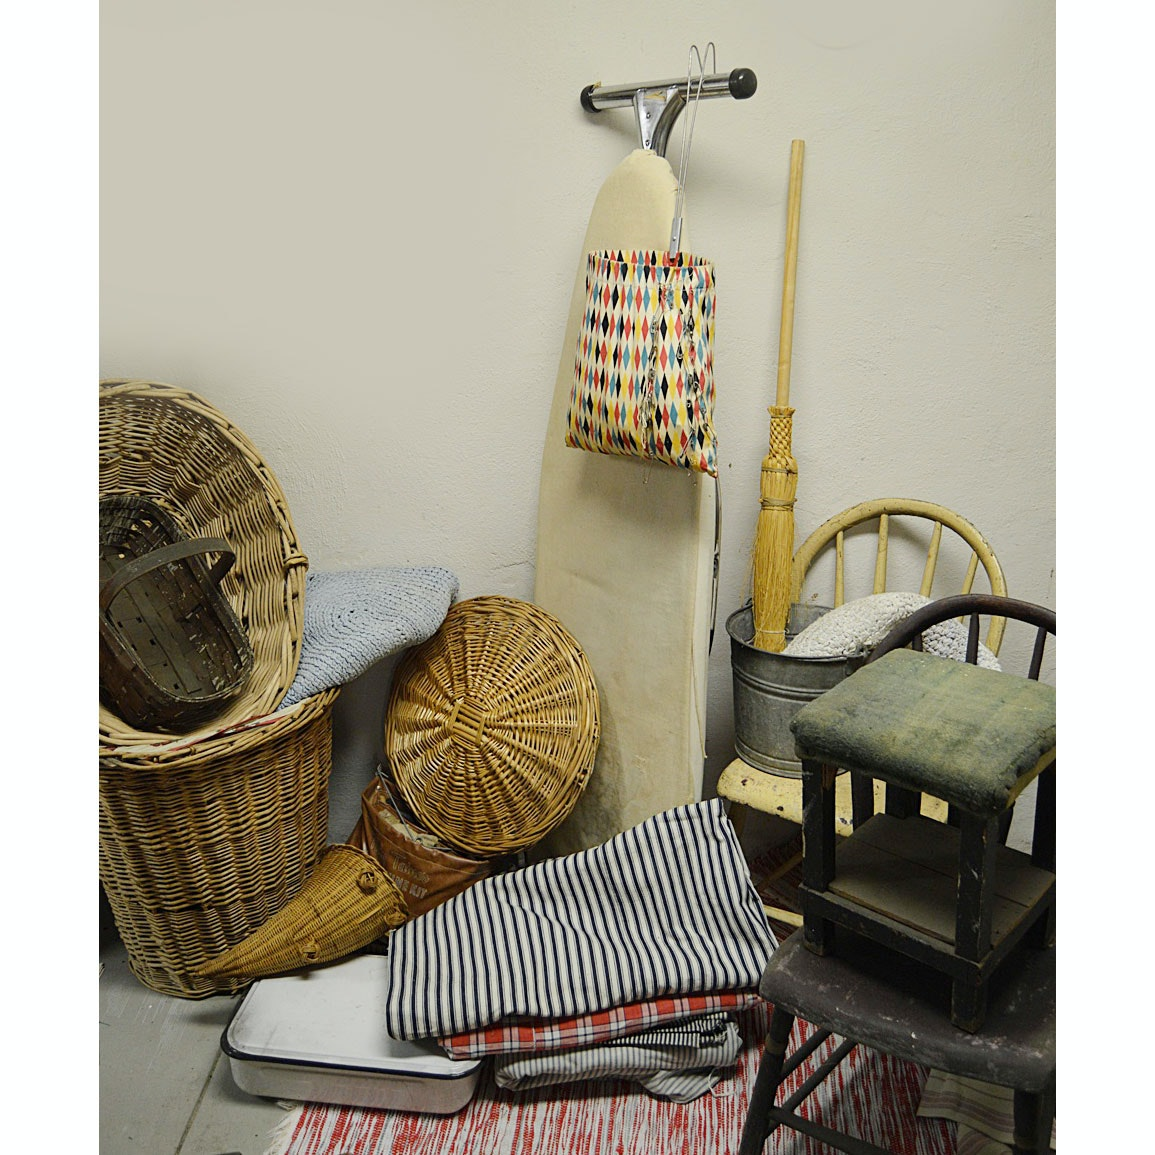 Vintage Chairs, Fabrics, Rag Rugs and Laundry Collectibles